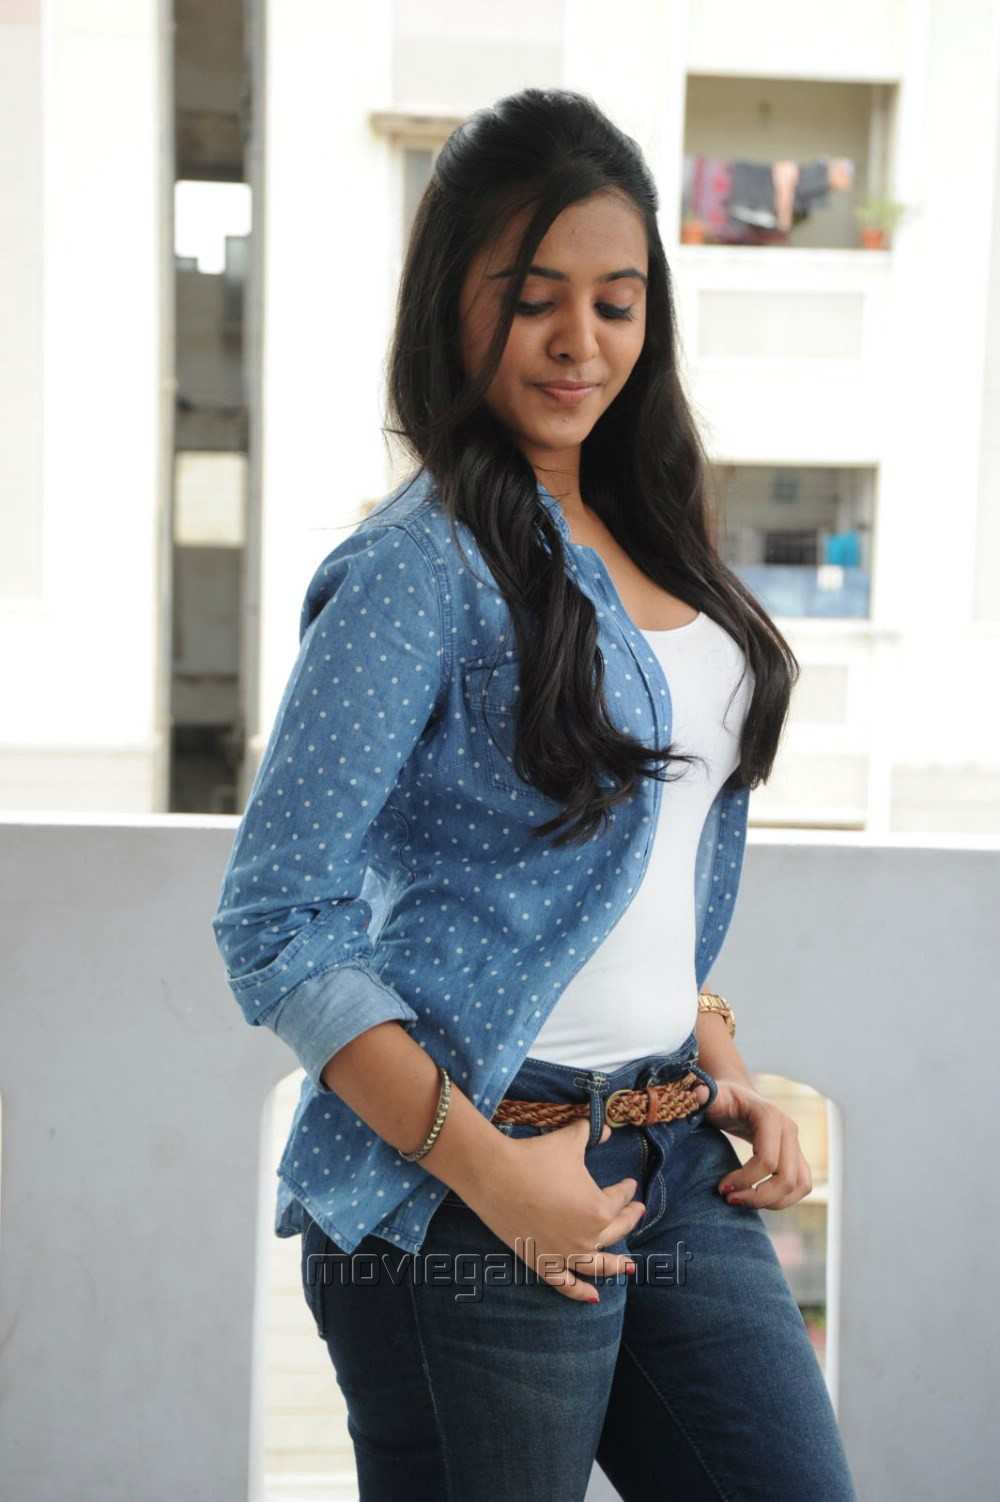 Remarkable tollywood hot in jeans ass have hit